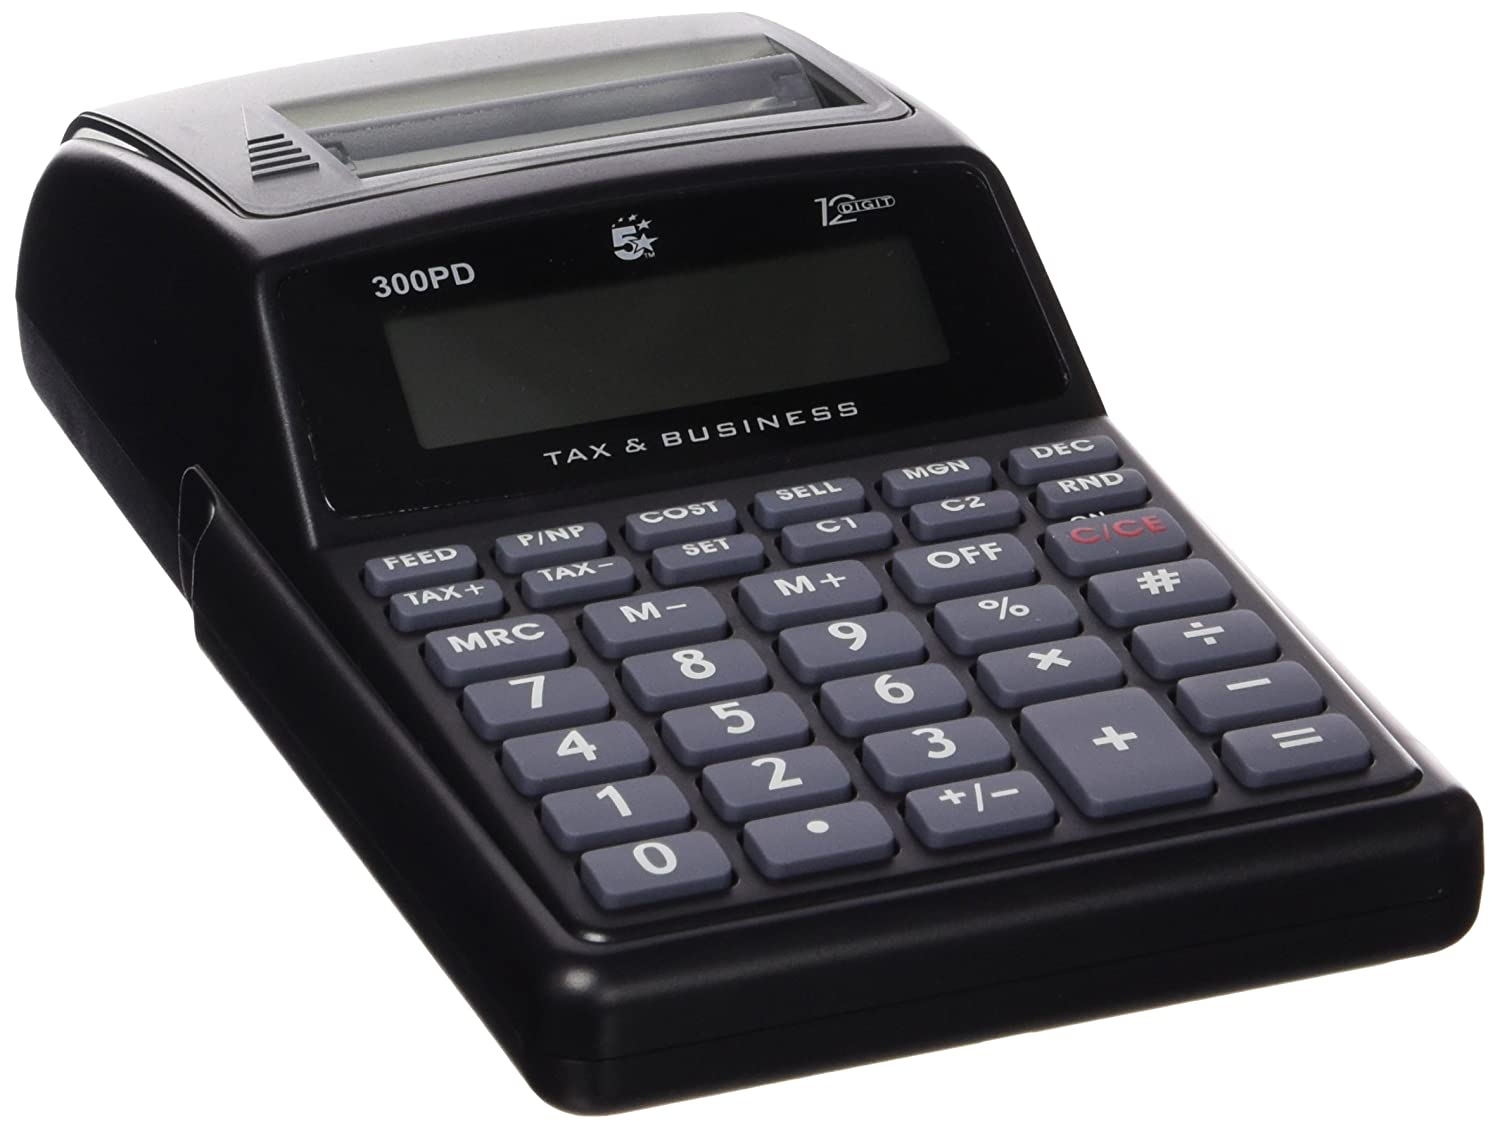 5 Star 5STAR 512PD - Calculadora con impresora: Amazon.es ...